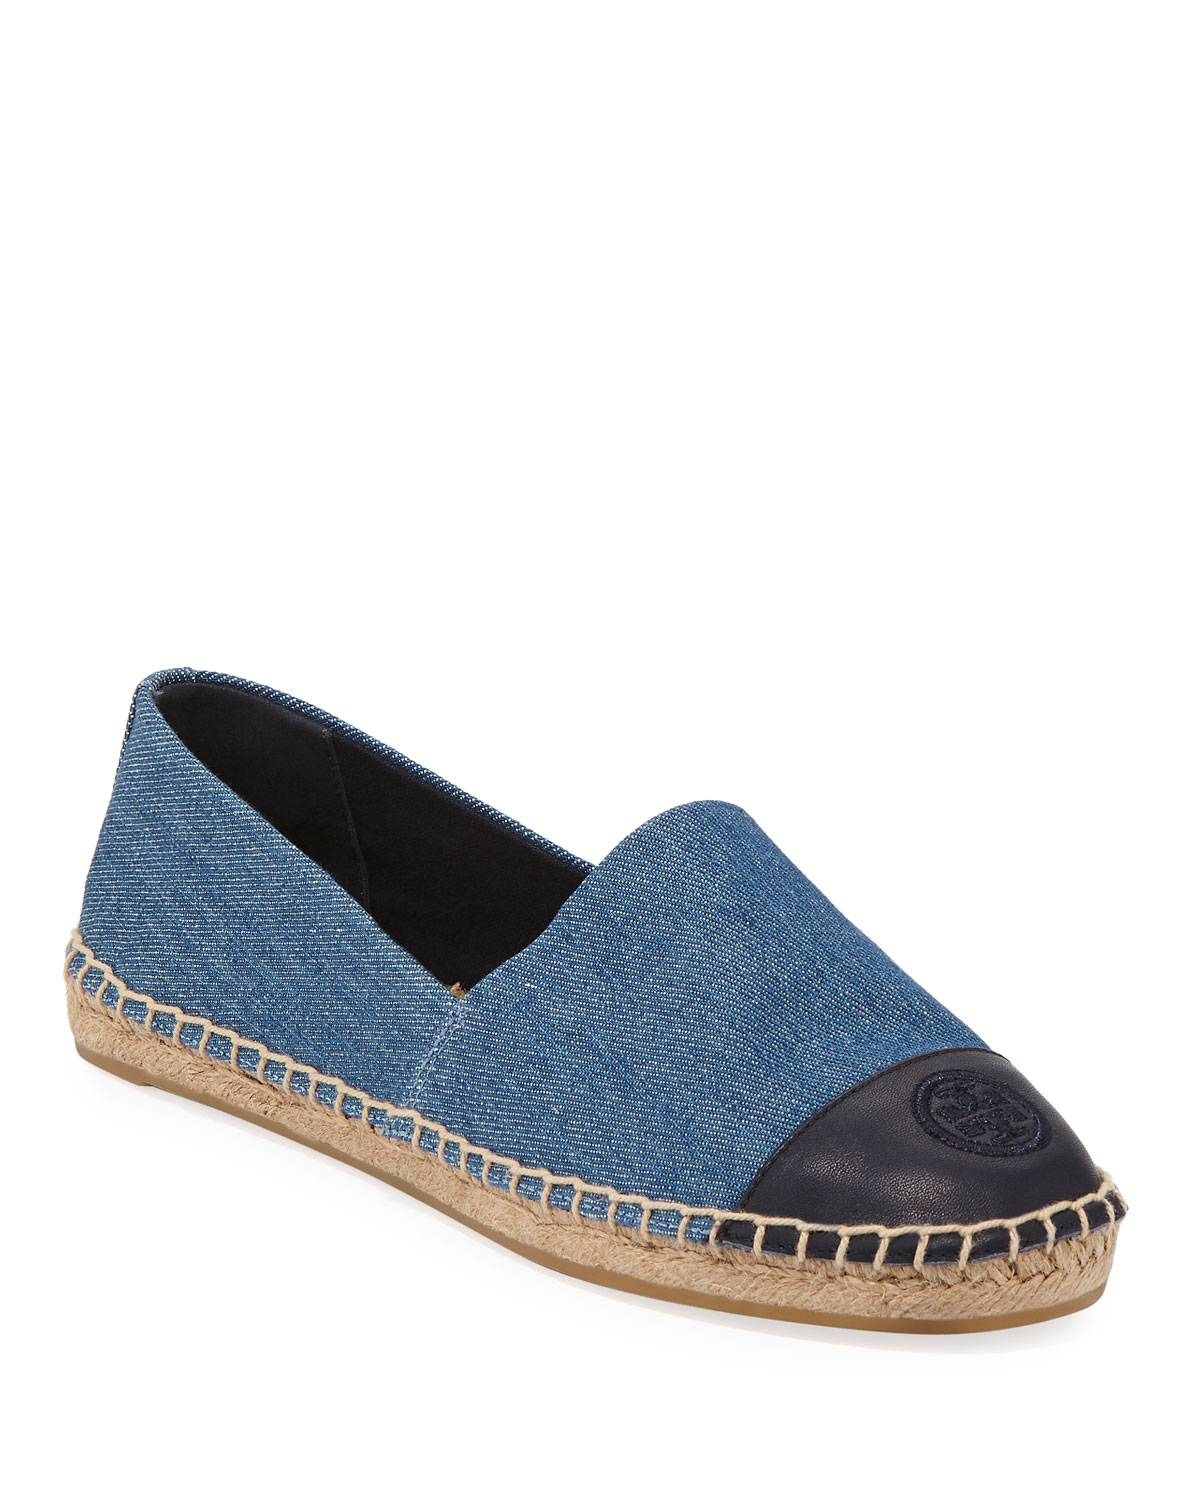 16675002611b Tory Burch Colorblock Denim Flat Espadrille